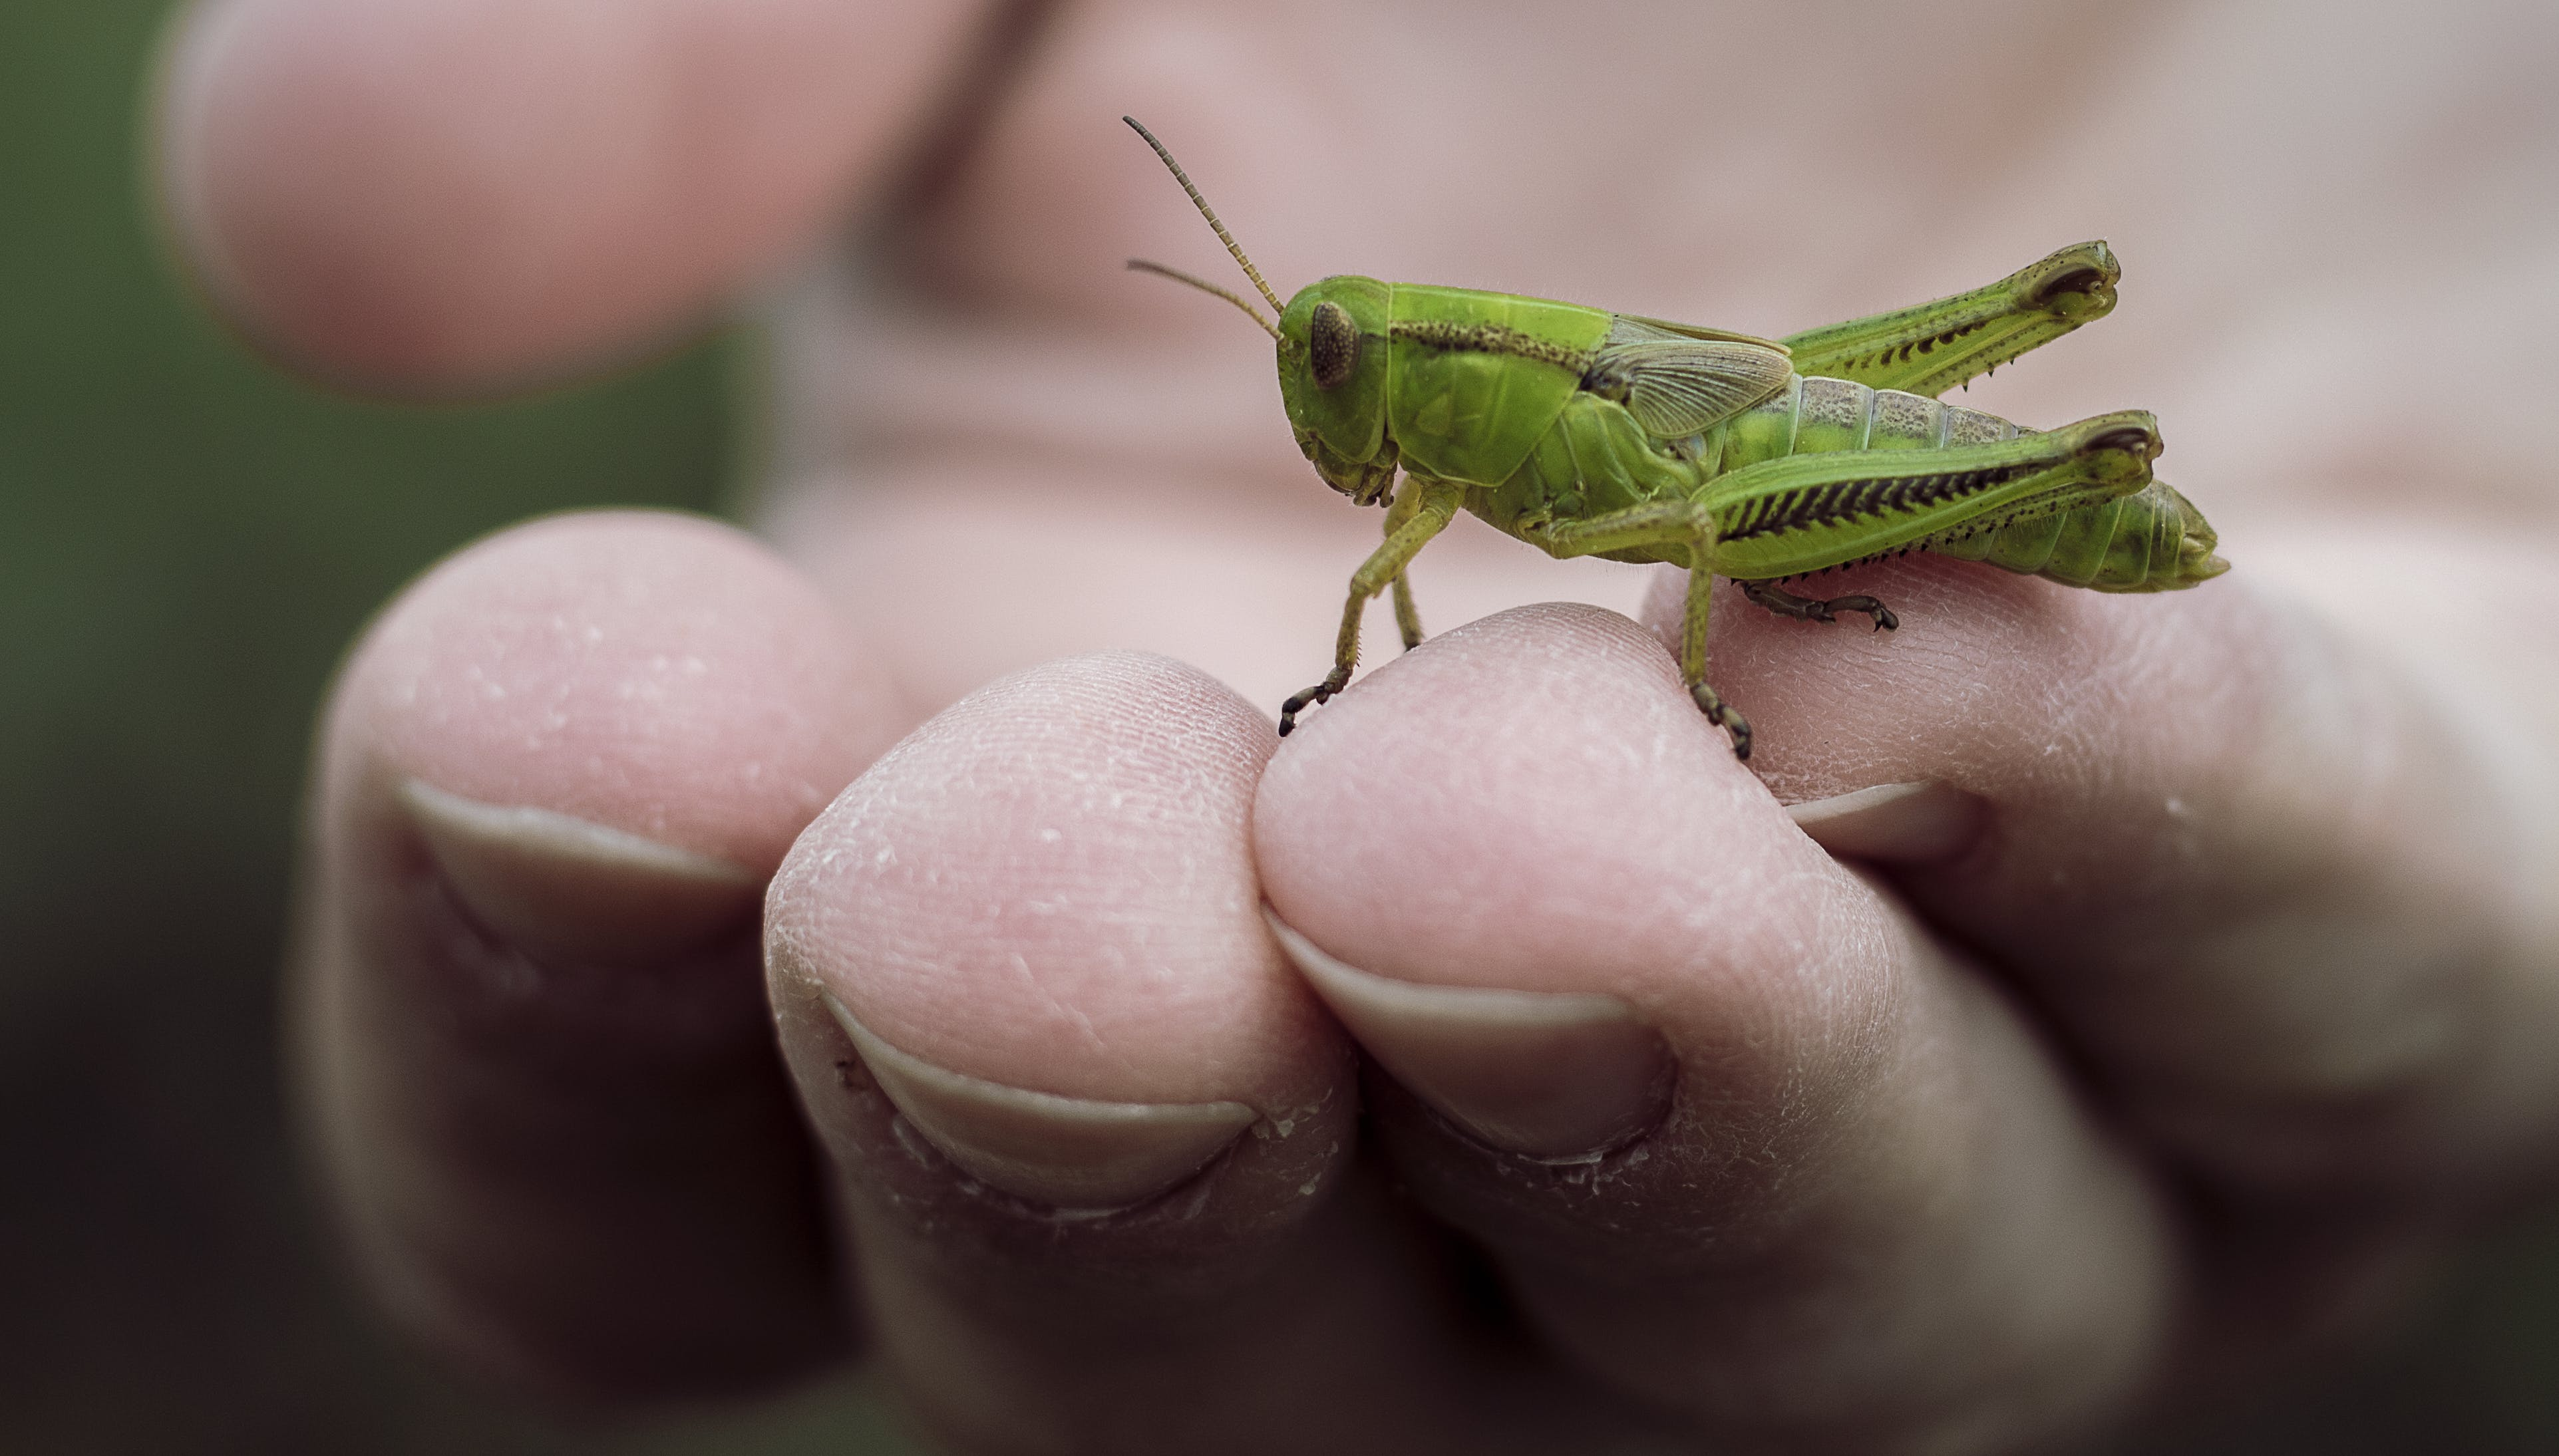 Free stock photo of grasshopper, green, hand, insect